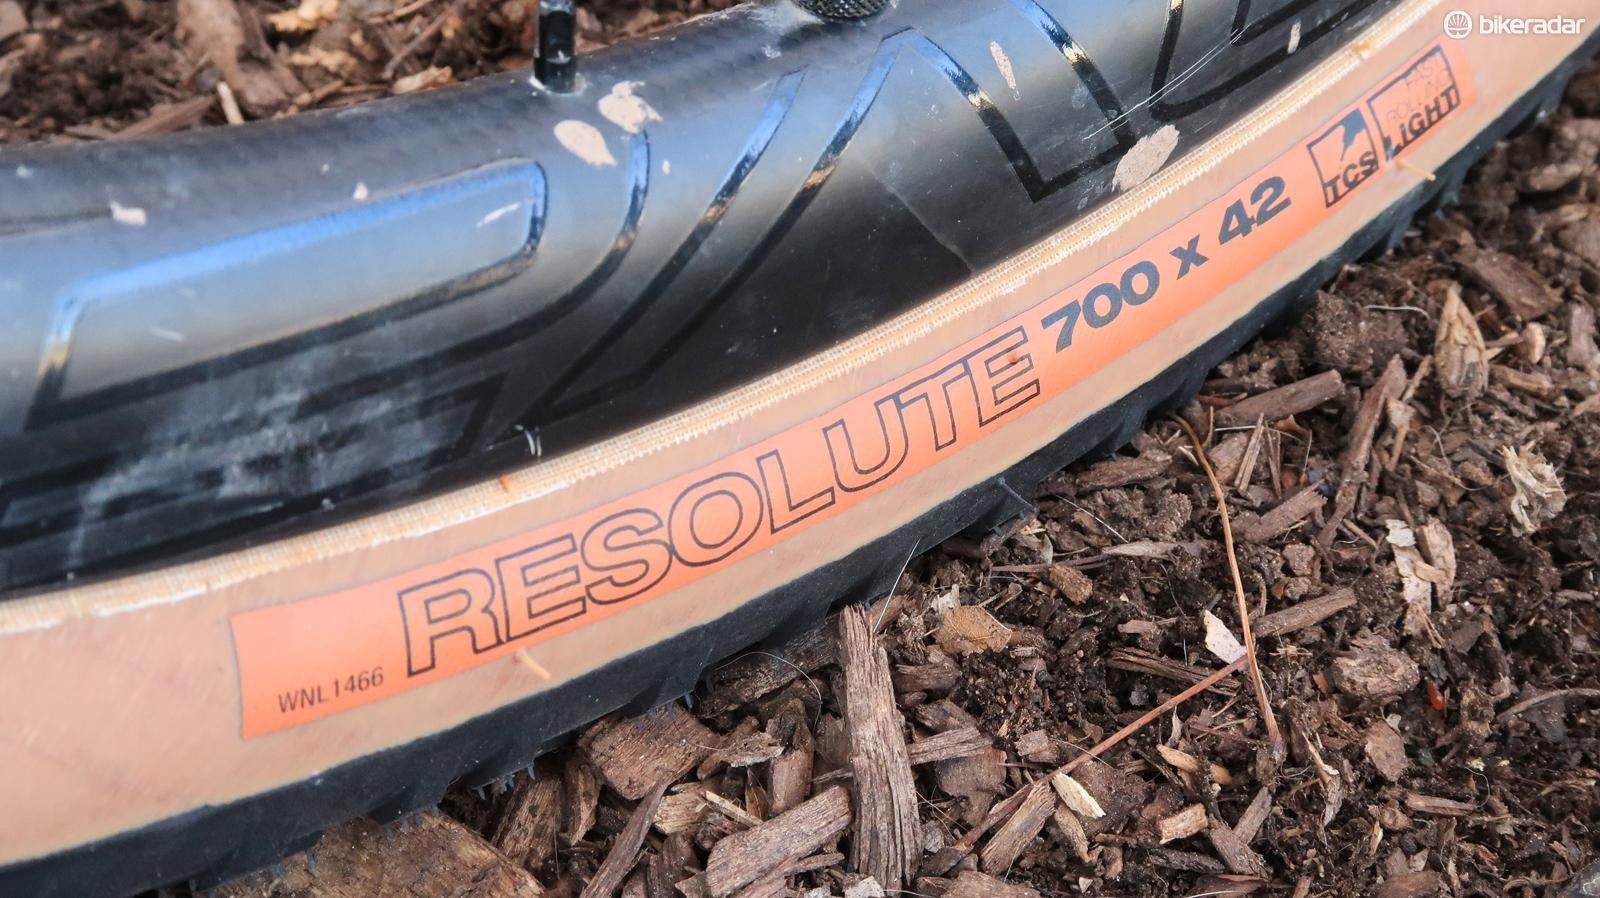 The Resolute measures slightly larger than the stated 42mm width on many rims